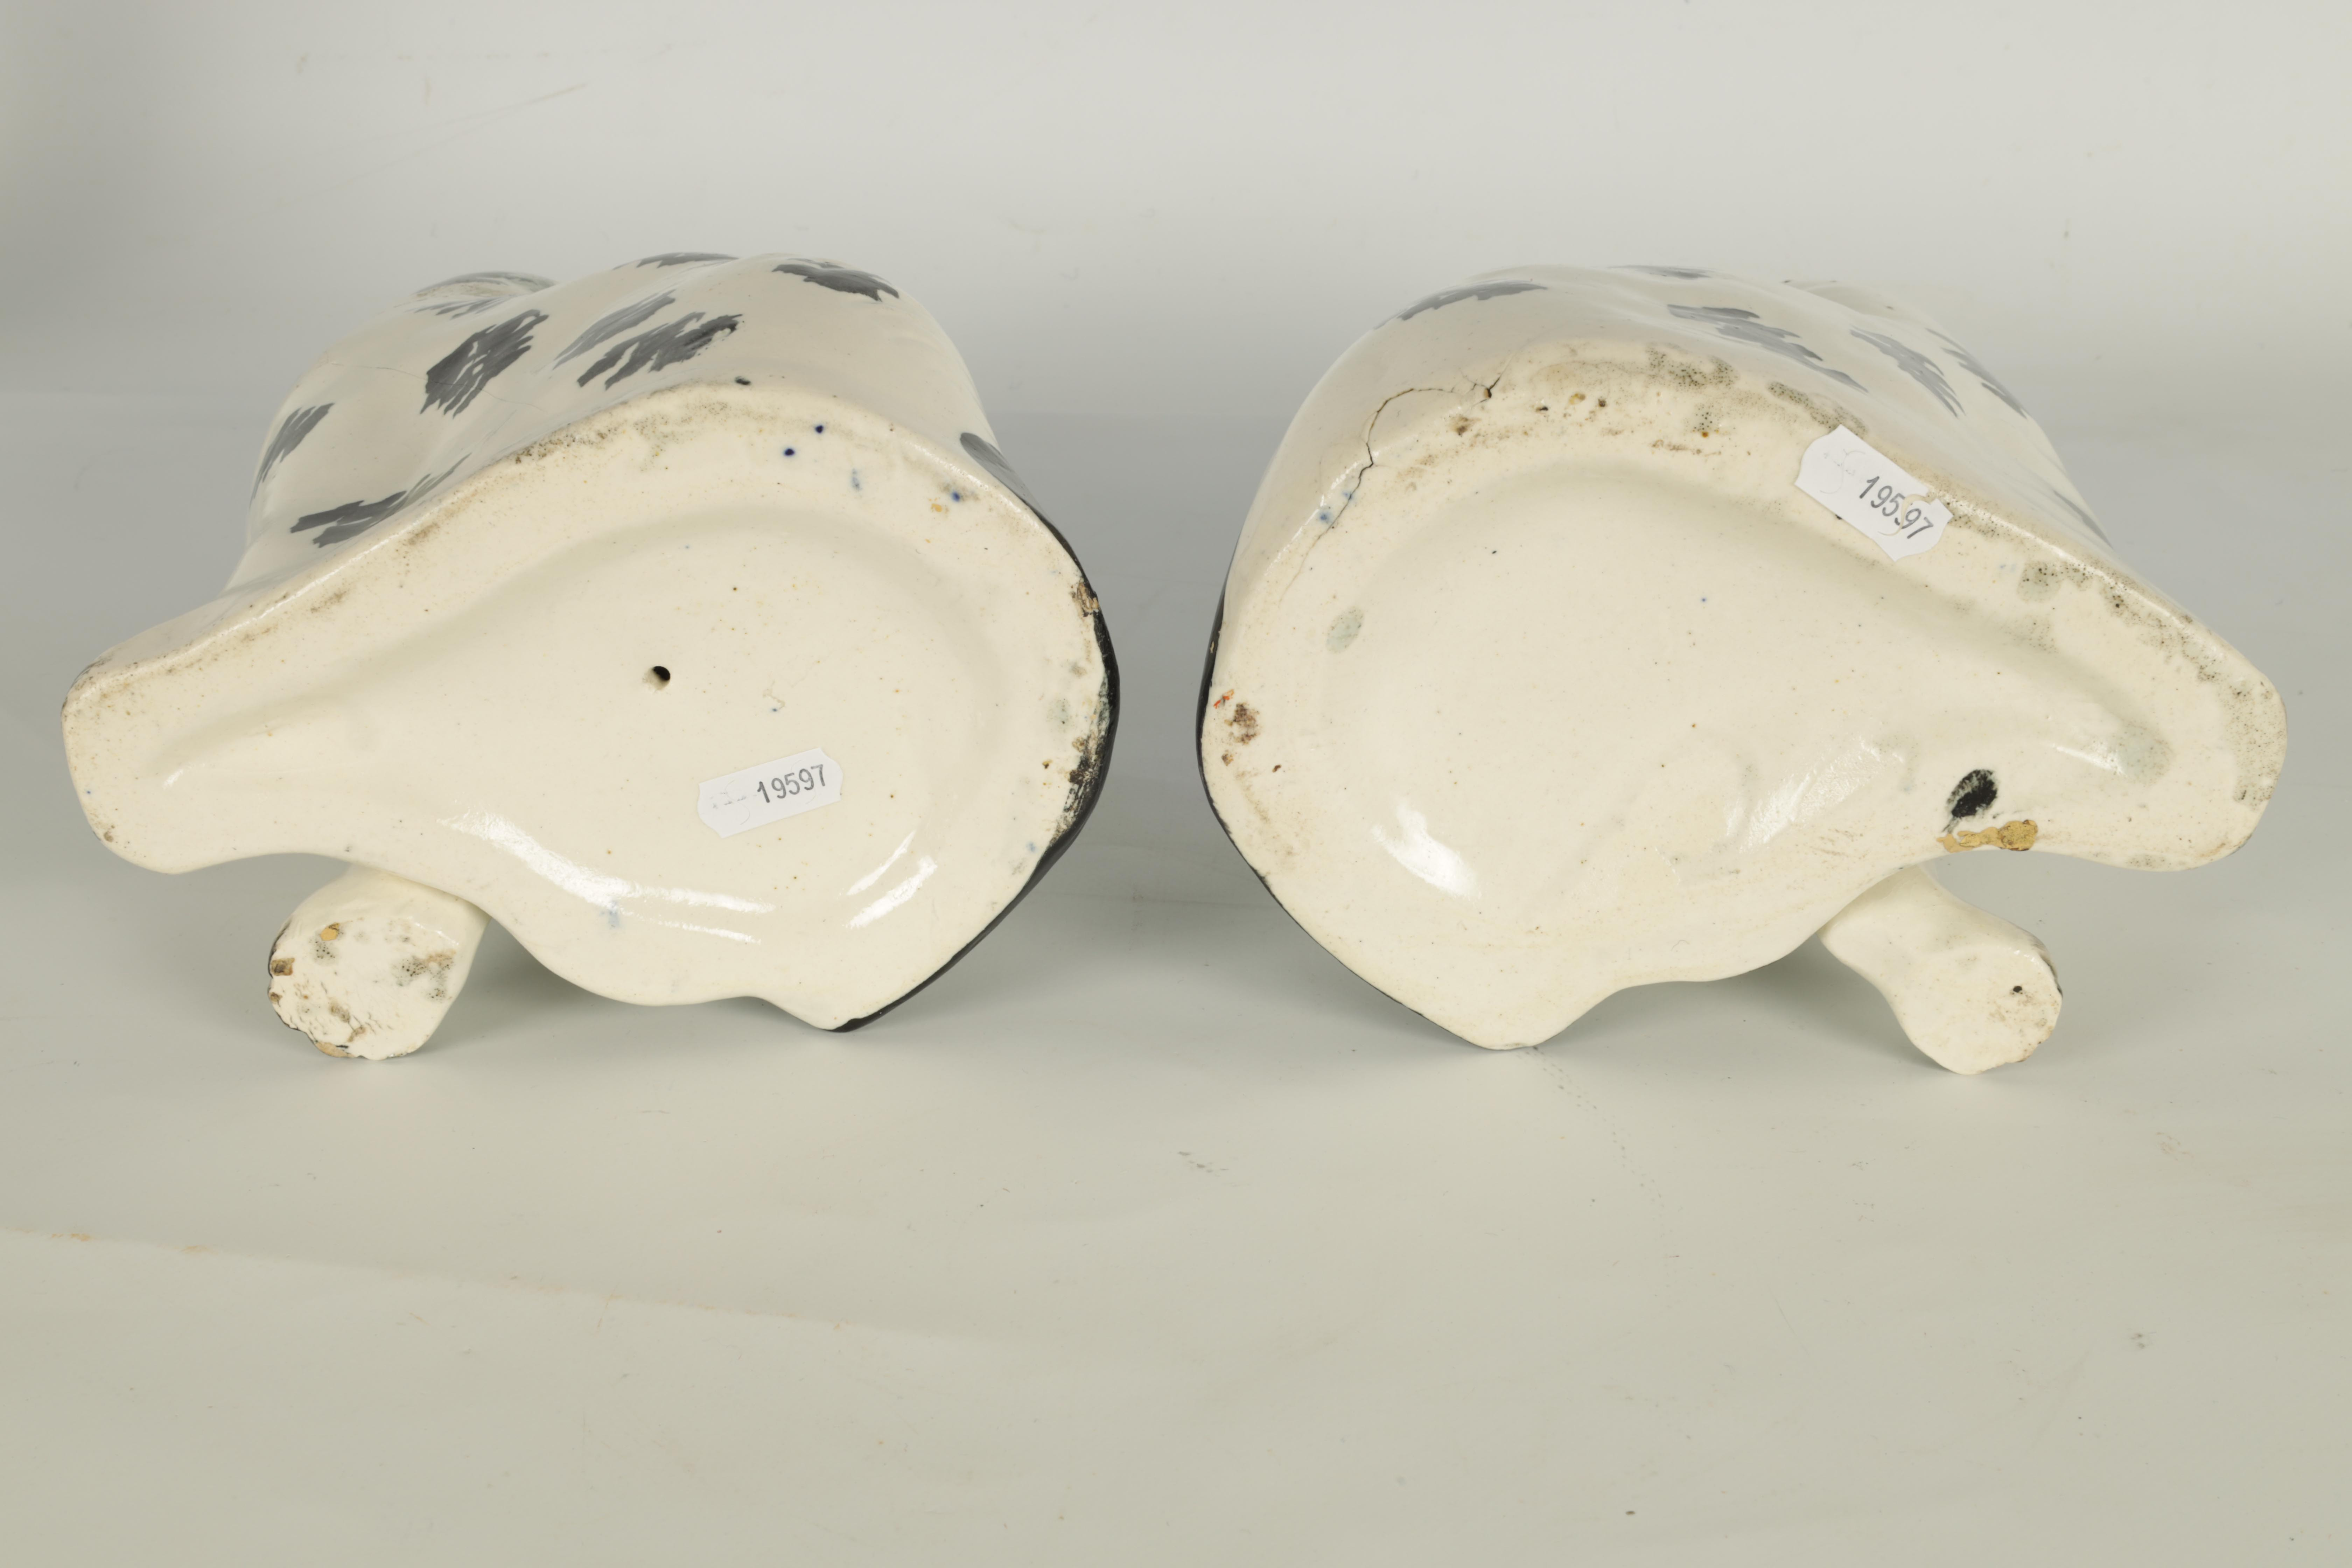 A PAIR OF 19TH CENTURY STAFFORDSHIRE 'DISRAELI CURL' SPANIELS 23cm high - Image 8 of 11